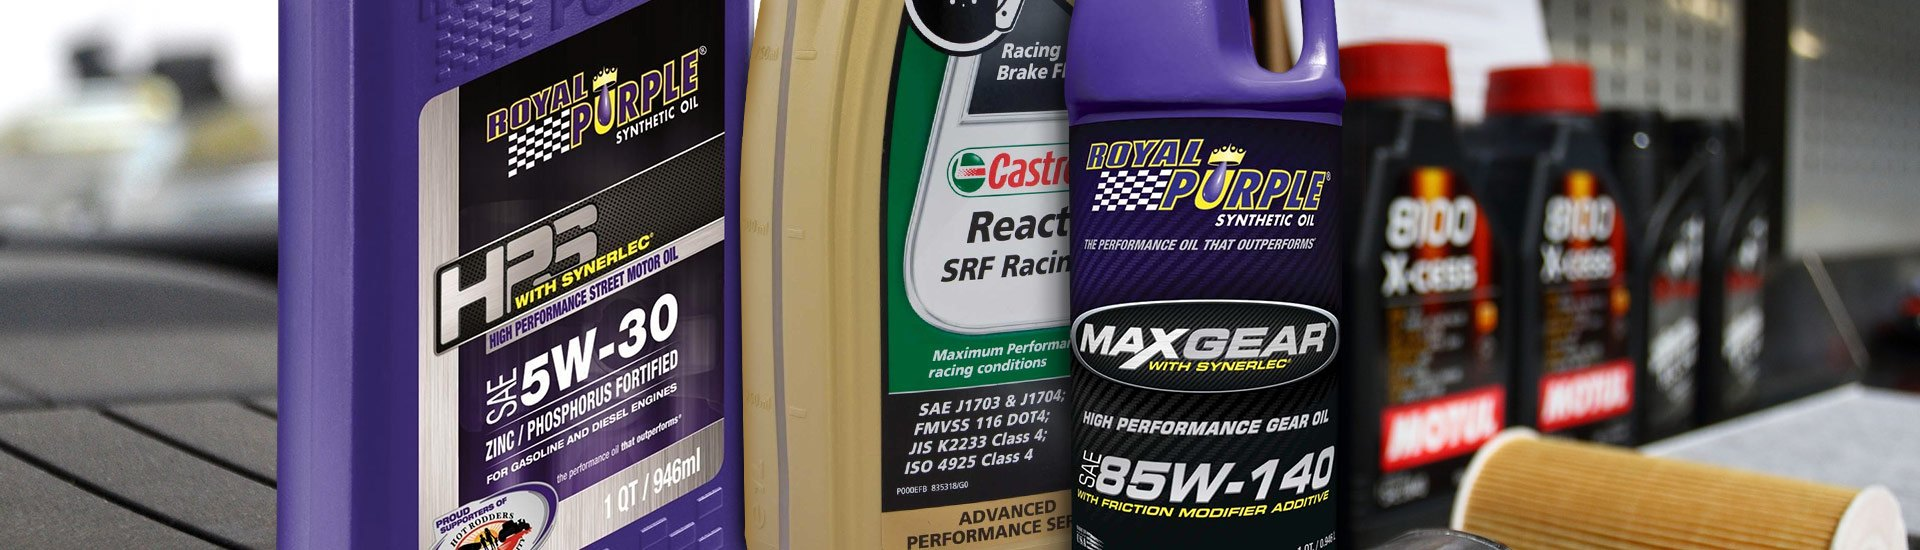 Oils, Fluids, Lubricants | Motor, Brake, Transmission